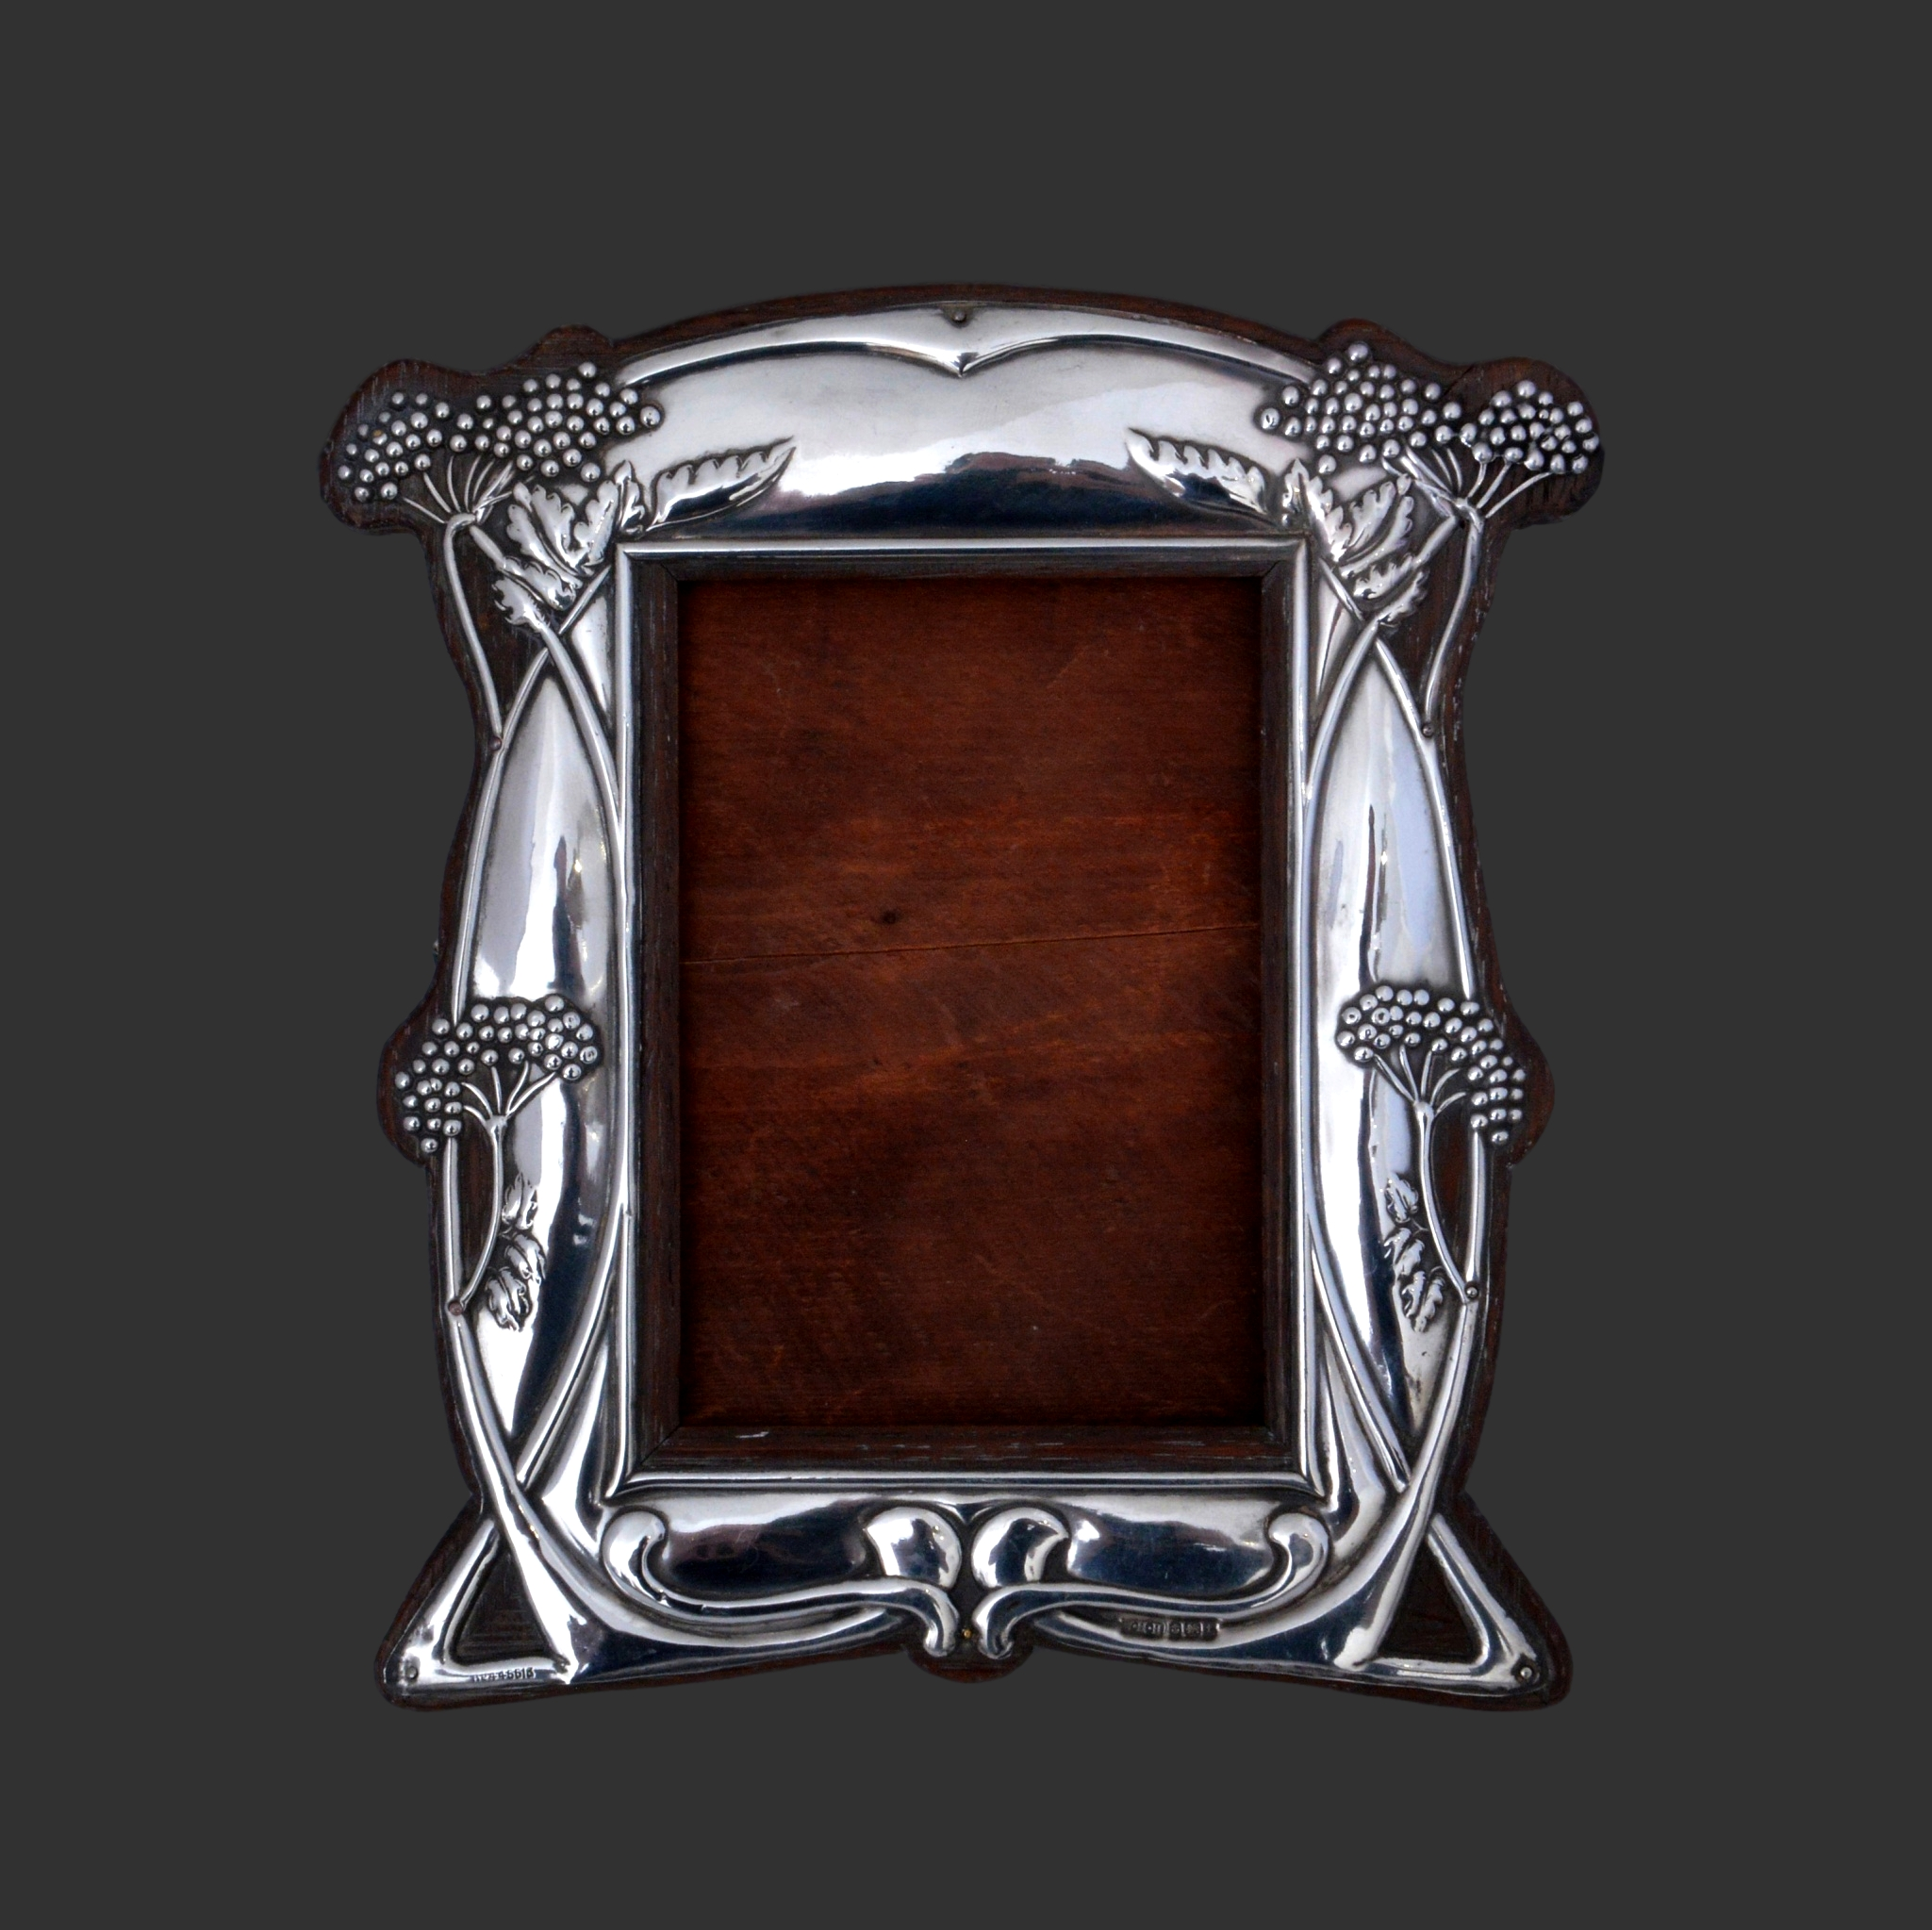 william hair haseler silver, arts crafts silver frame